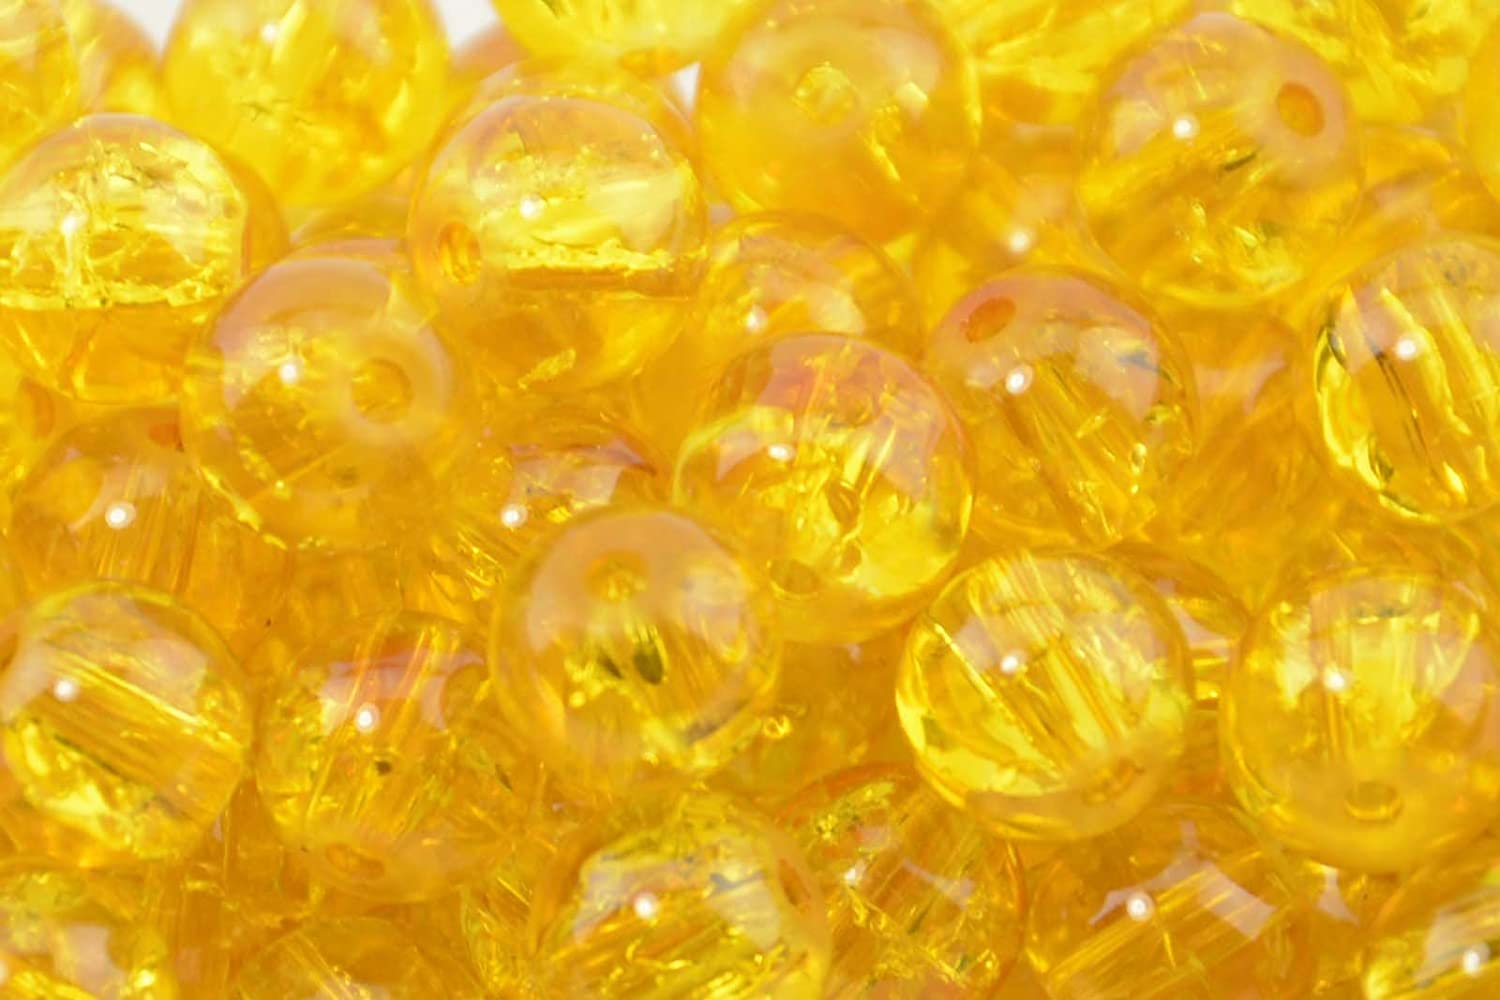 145pcs 6mm Yellow Crackle Glass Beads Box Displays